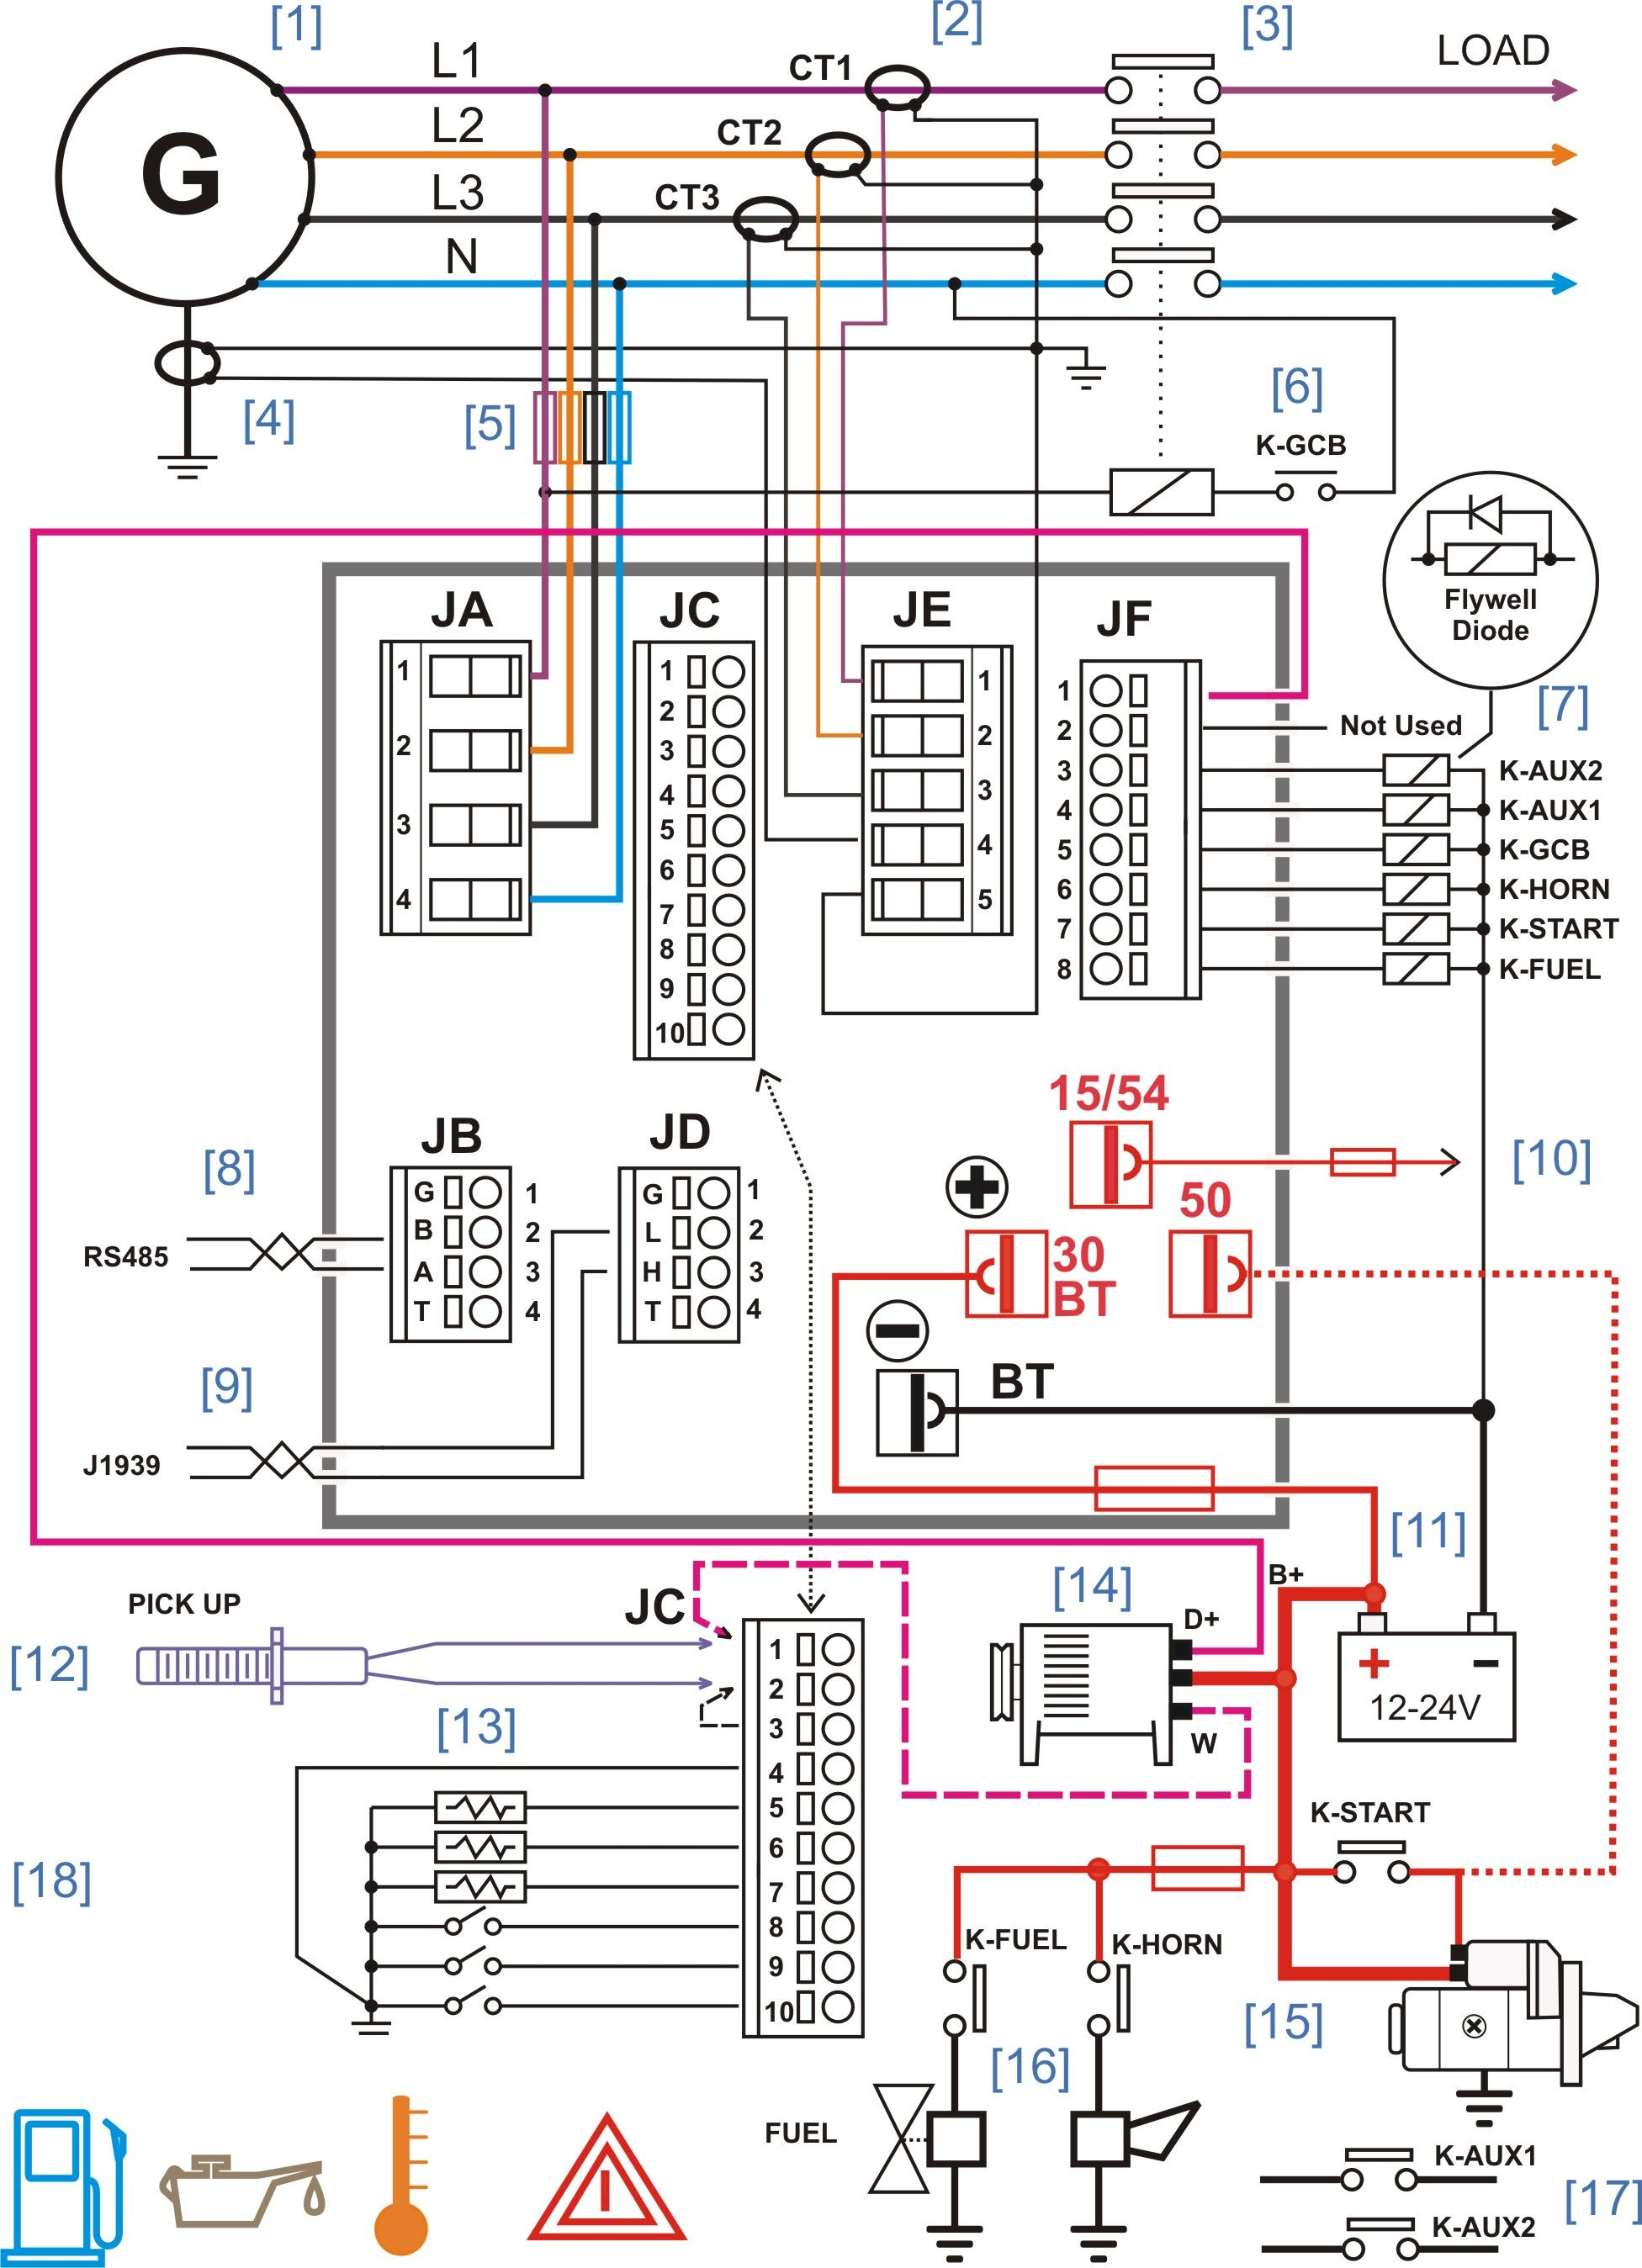 generator engine control wiring diagram portable generator voltage control wiring diagram